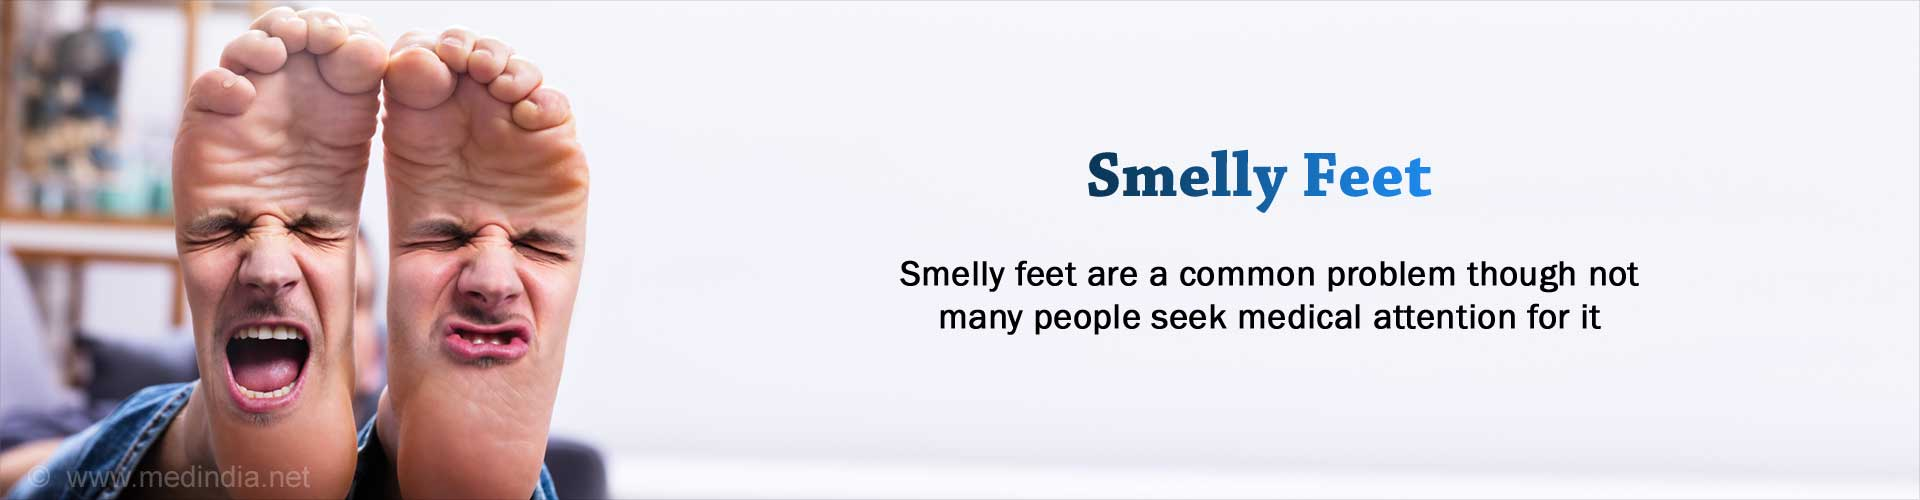 Smelly Feet | Bromodosis: Causes, Symptoms, Signs, Treatment, Prevention